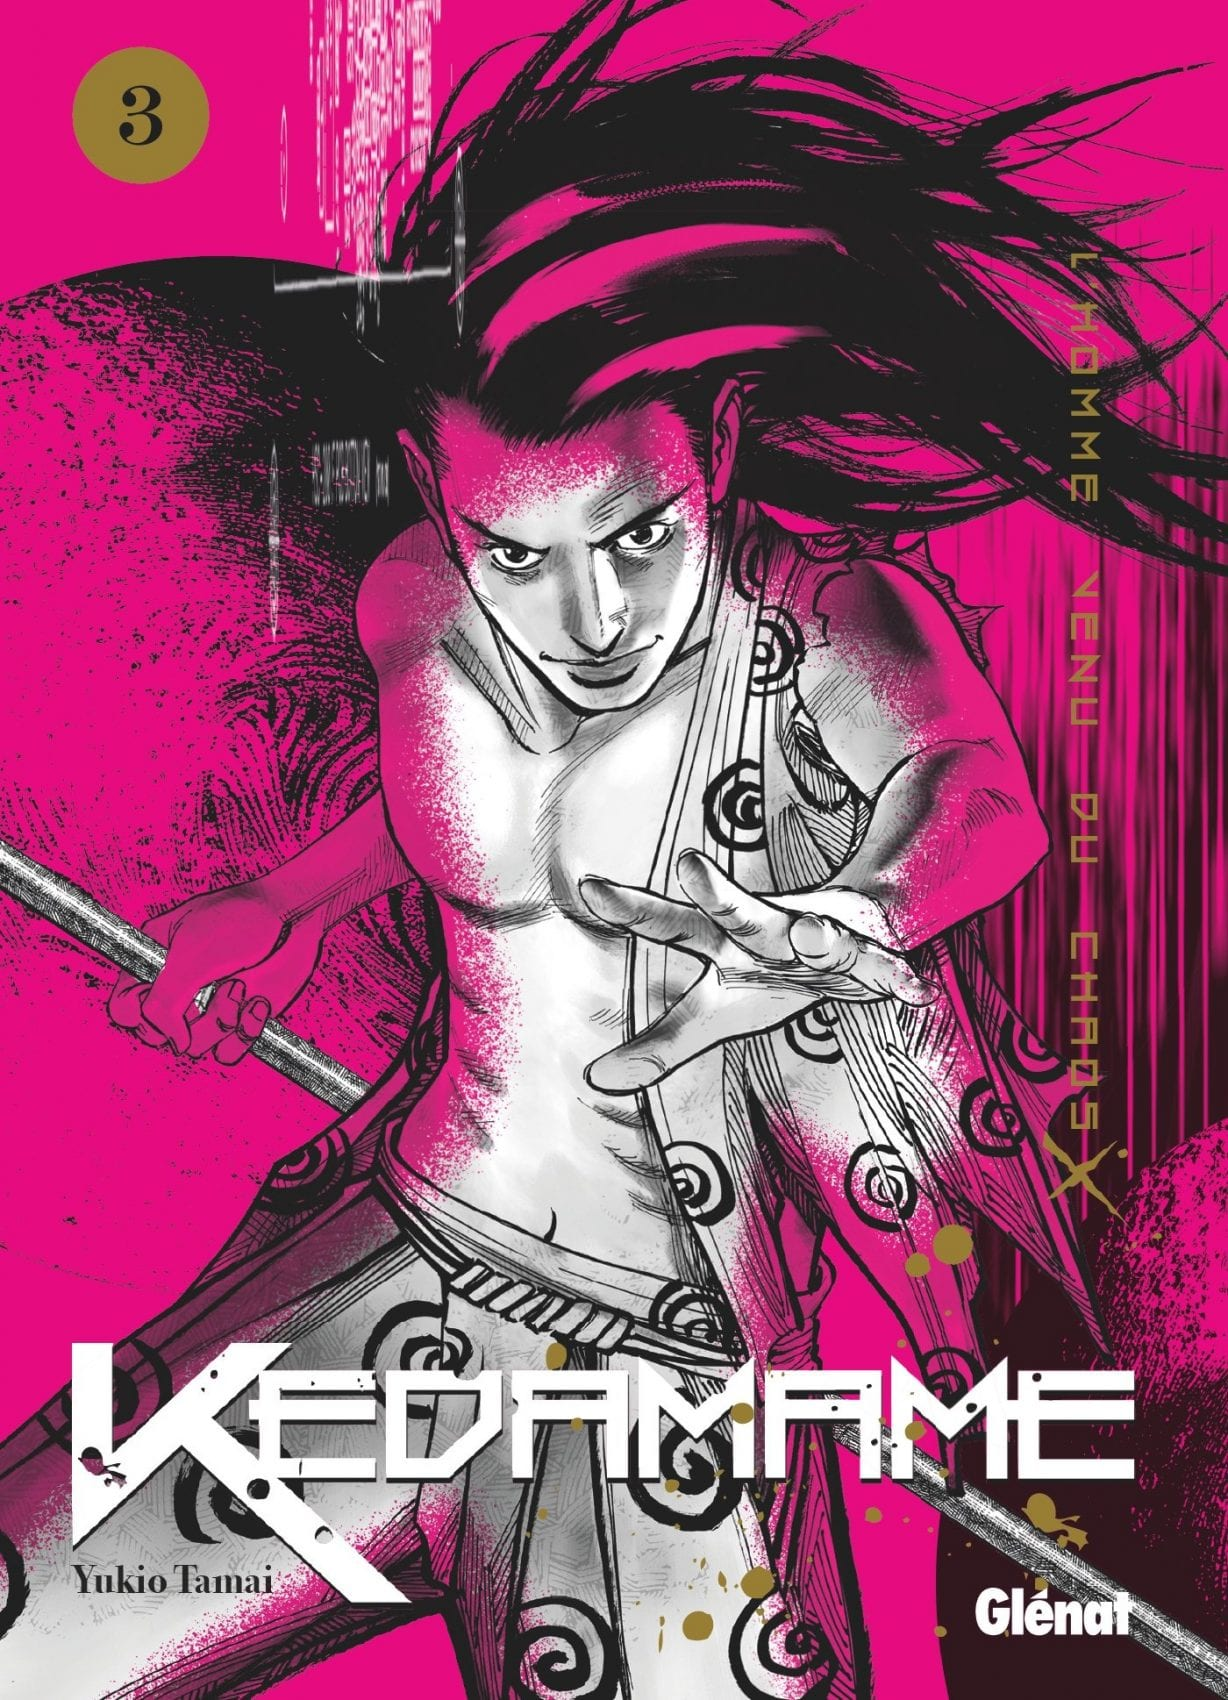 REVIEW – Kedamame (tome 3)